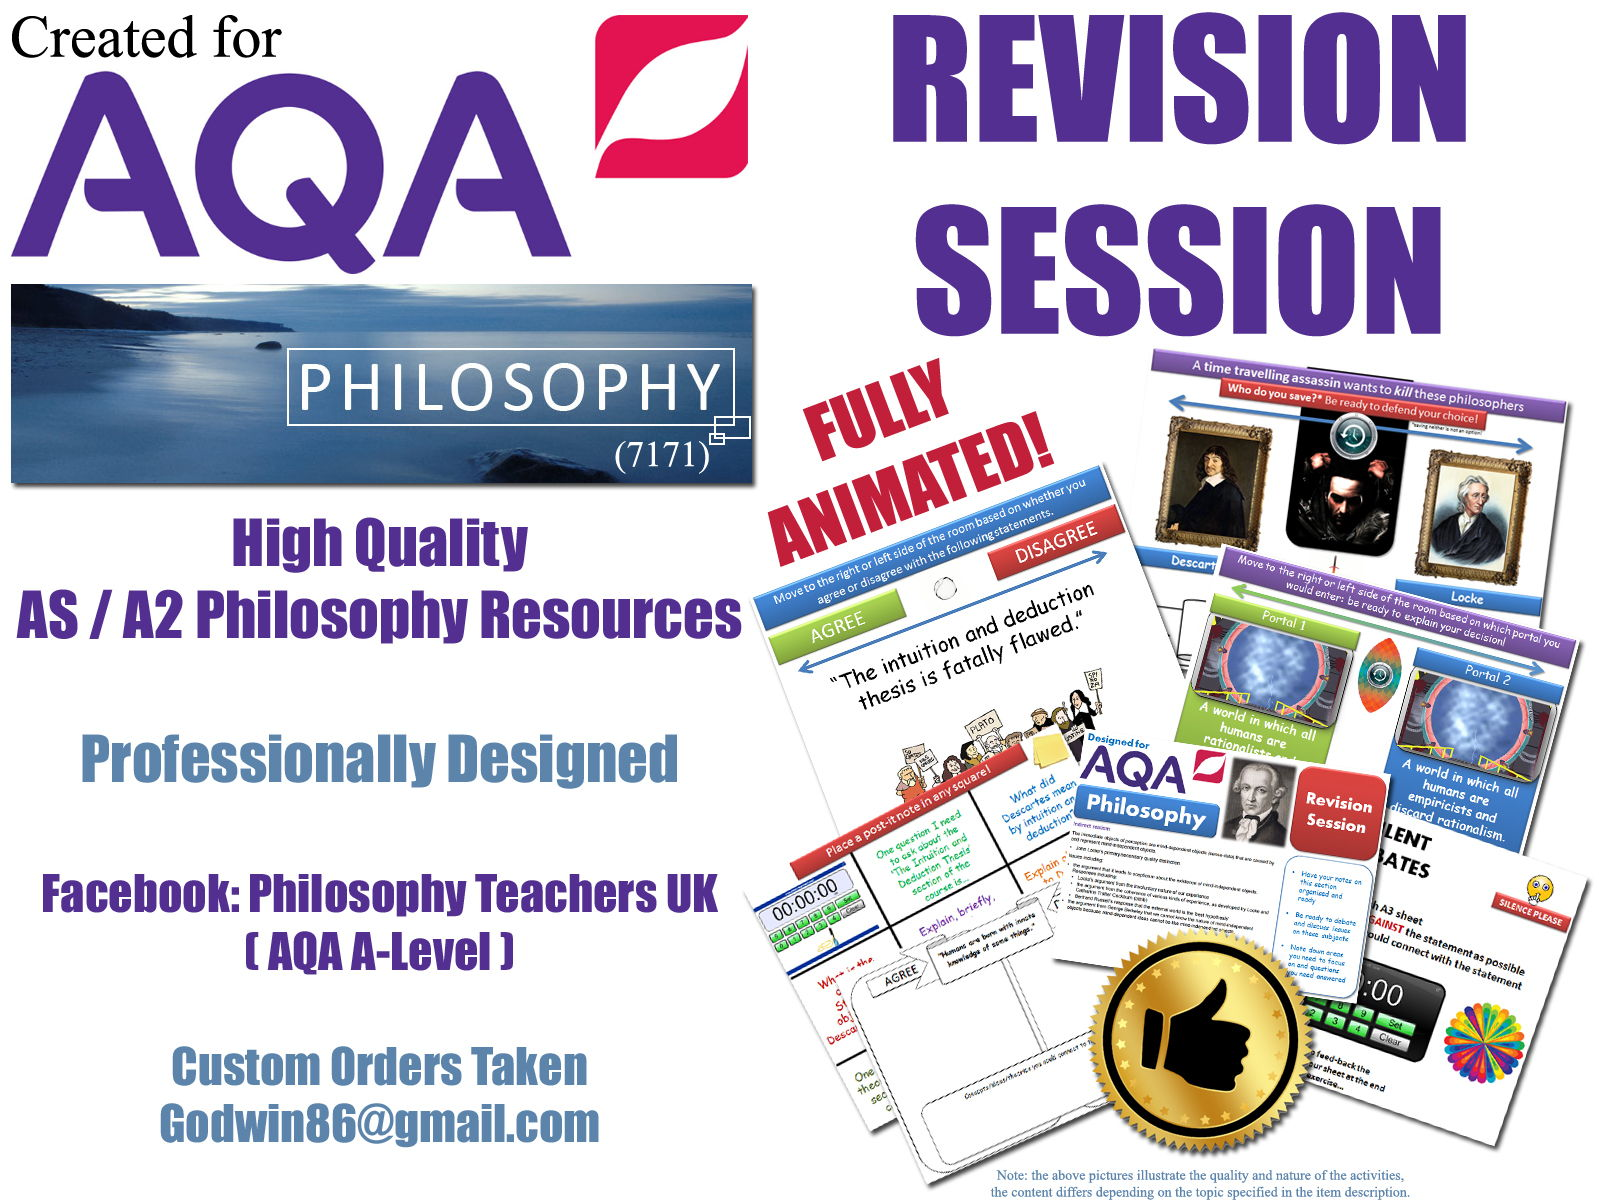 AQA Philosophy - A2 Revision Bundle [ Metaphysics of Mind] (NEW SPEC!) Covers:  Dualism (Substance & Property), Mind Brain Type Identity Theory, Physicalism / Behaviourism , Eliminative Materialism and 'What do we Mean by Mind?' topics.